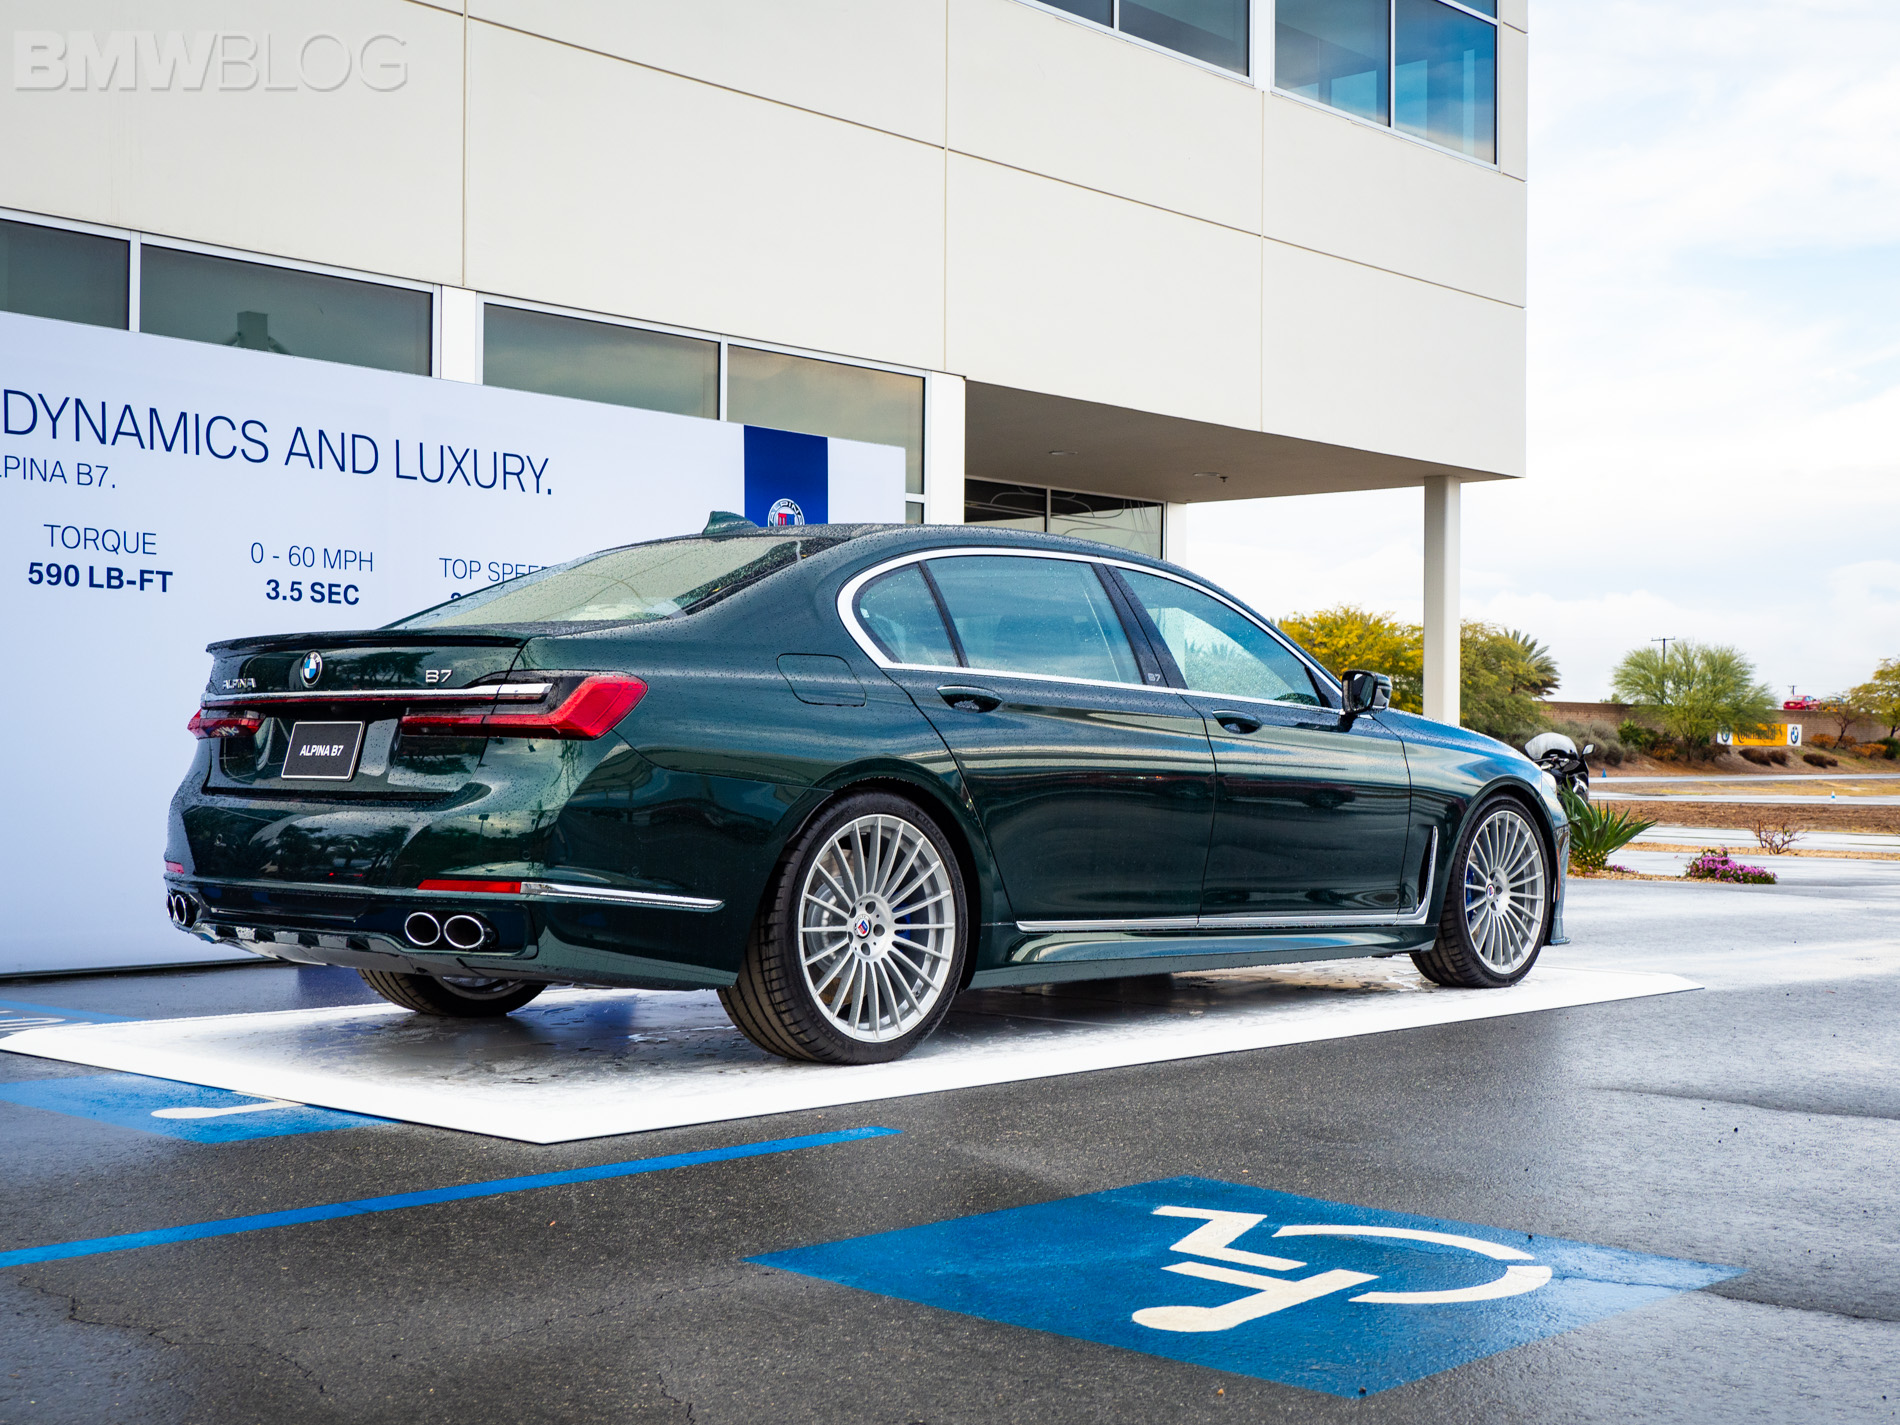 More Real Life Photos Of The Stunning 2020 Alpina B7 In Alpina Green